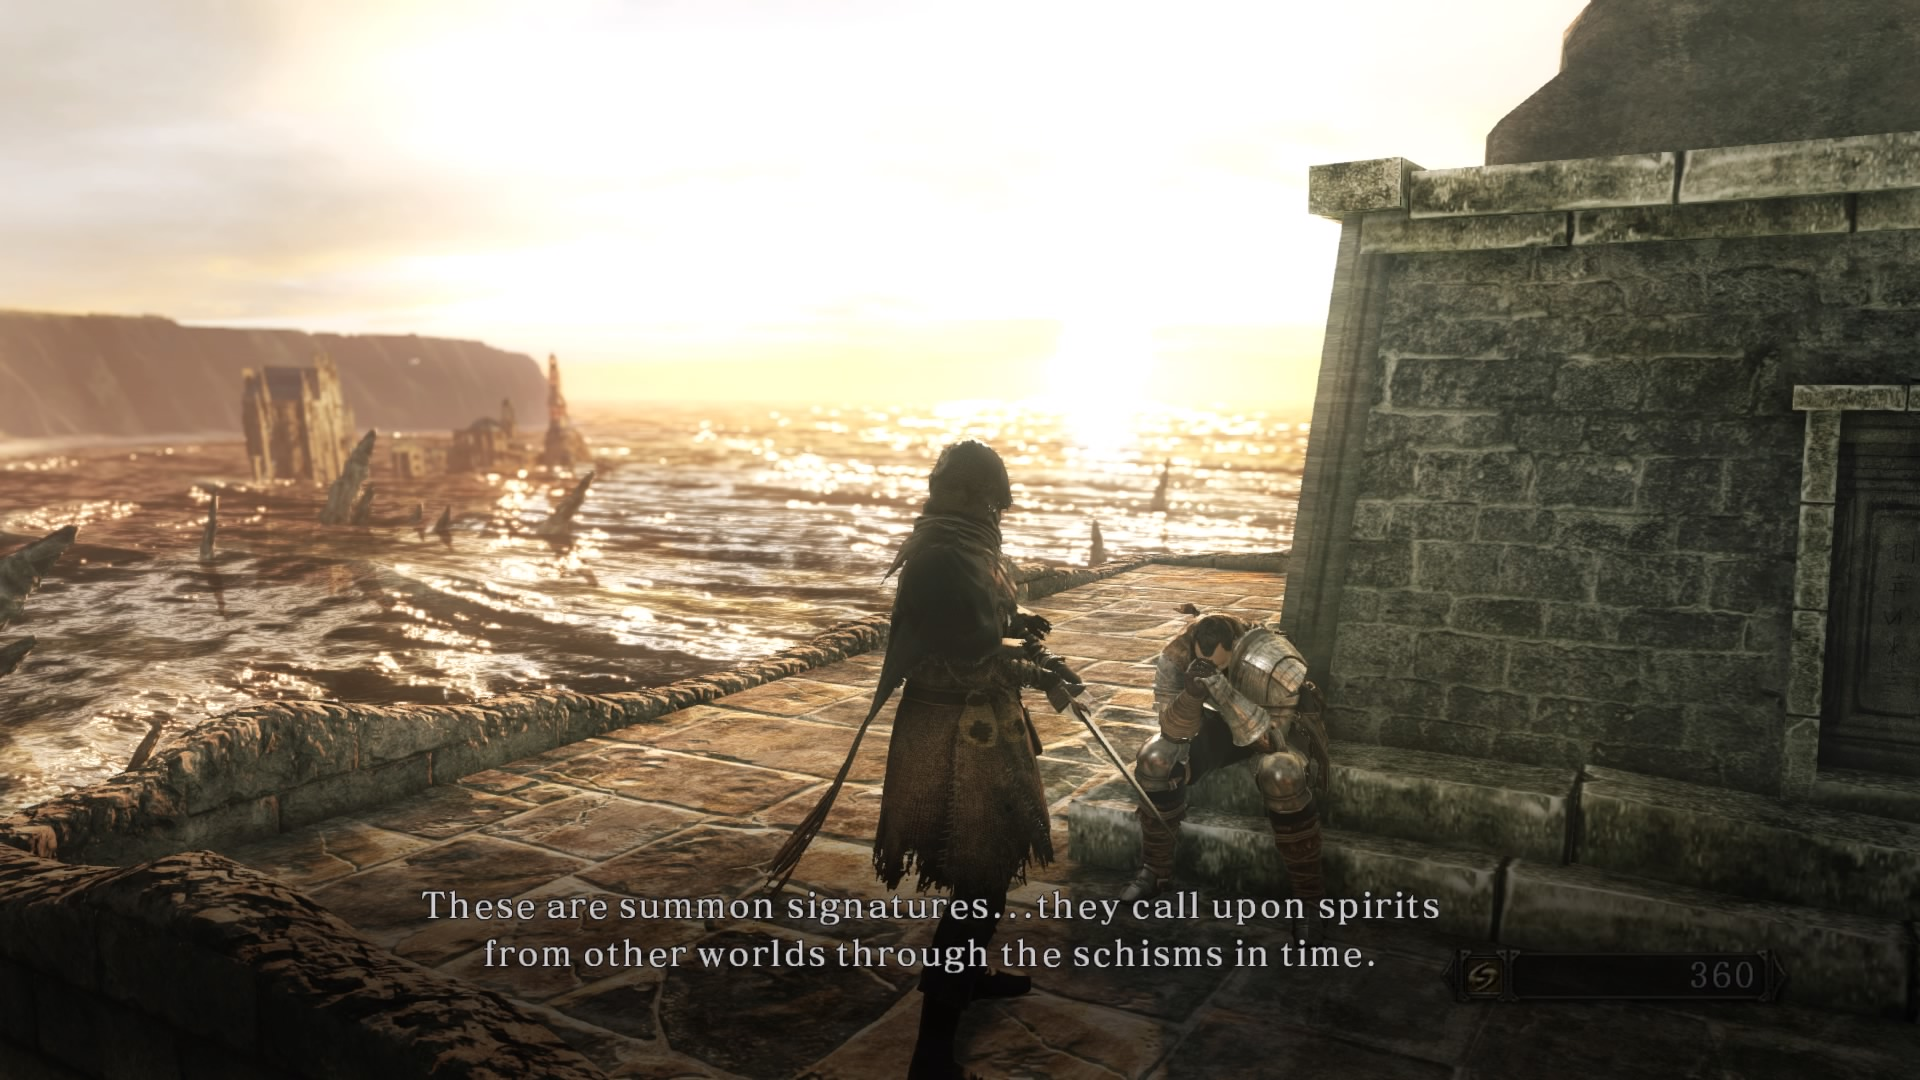 Time and space are convoluted in Dark Souls | Mega Bears Fan Order Of Dark Souls Map Completion on map of forza horizon 2, map of tales of xillia 2, map of silent hill 2, map of gta v, map of dead island riptide, map of saints row 2, map of just cause 2, map of nintendo land, map of far cry 3, map of dead rising 2, map of arma 3, map of sleeping dogs, map of tomb raider, demon's souls 2, map of five nights at freddy's 2, map of borderlands 2, map of the witcher 2, map of grand theft auto v, map of skylanders giants, map of demon's souls,